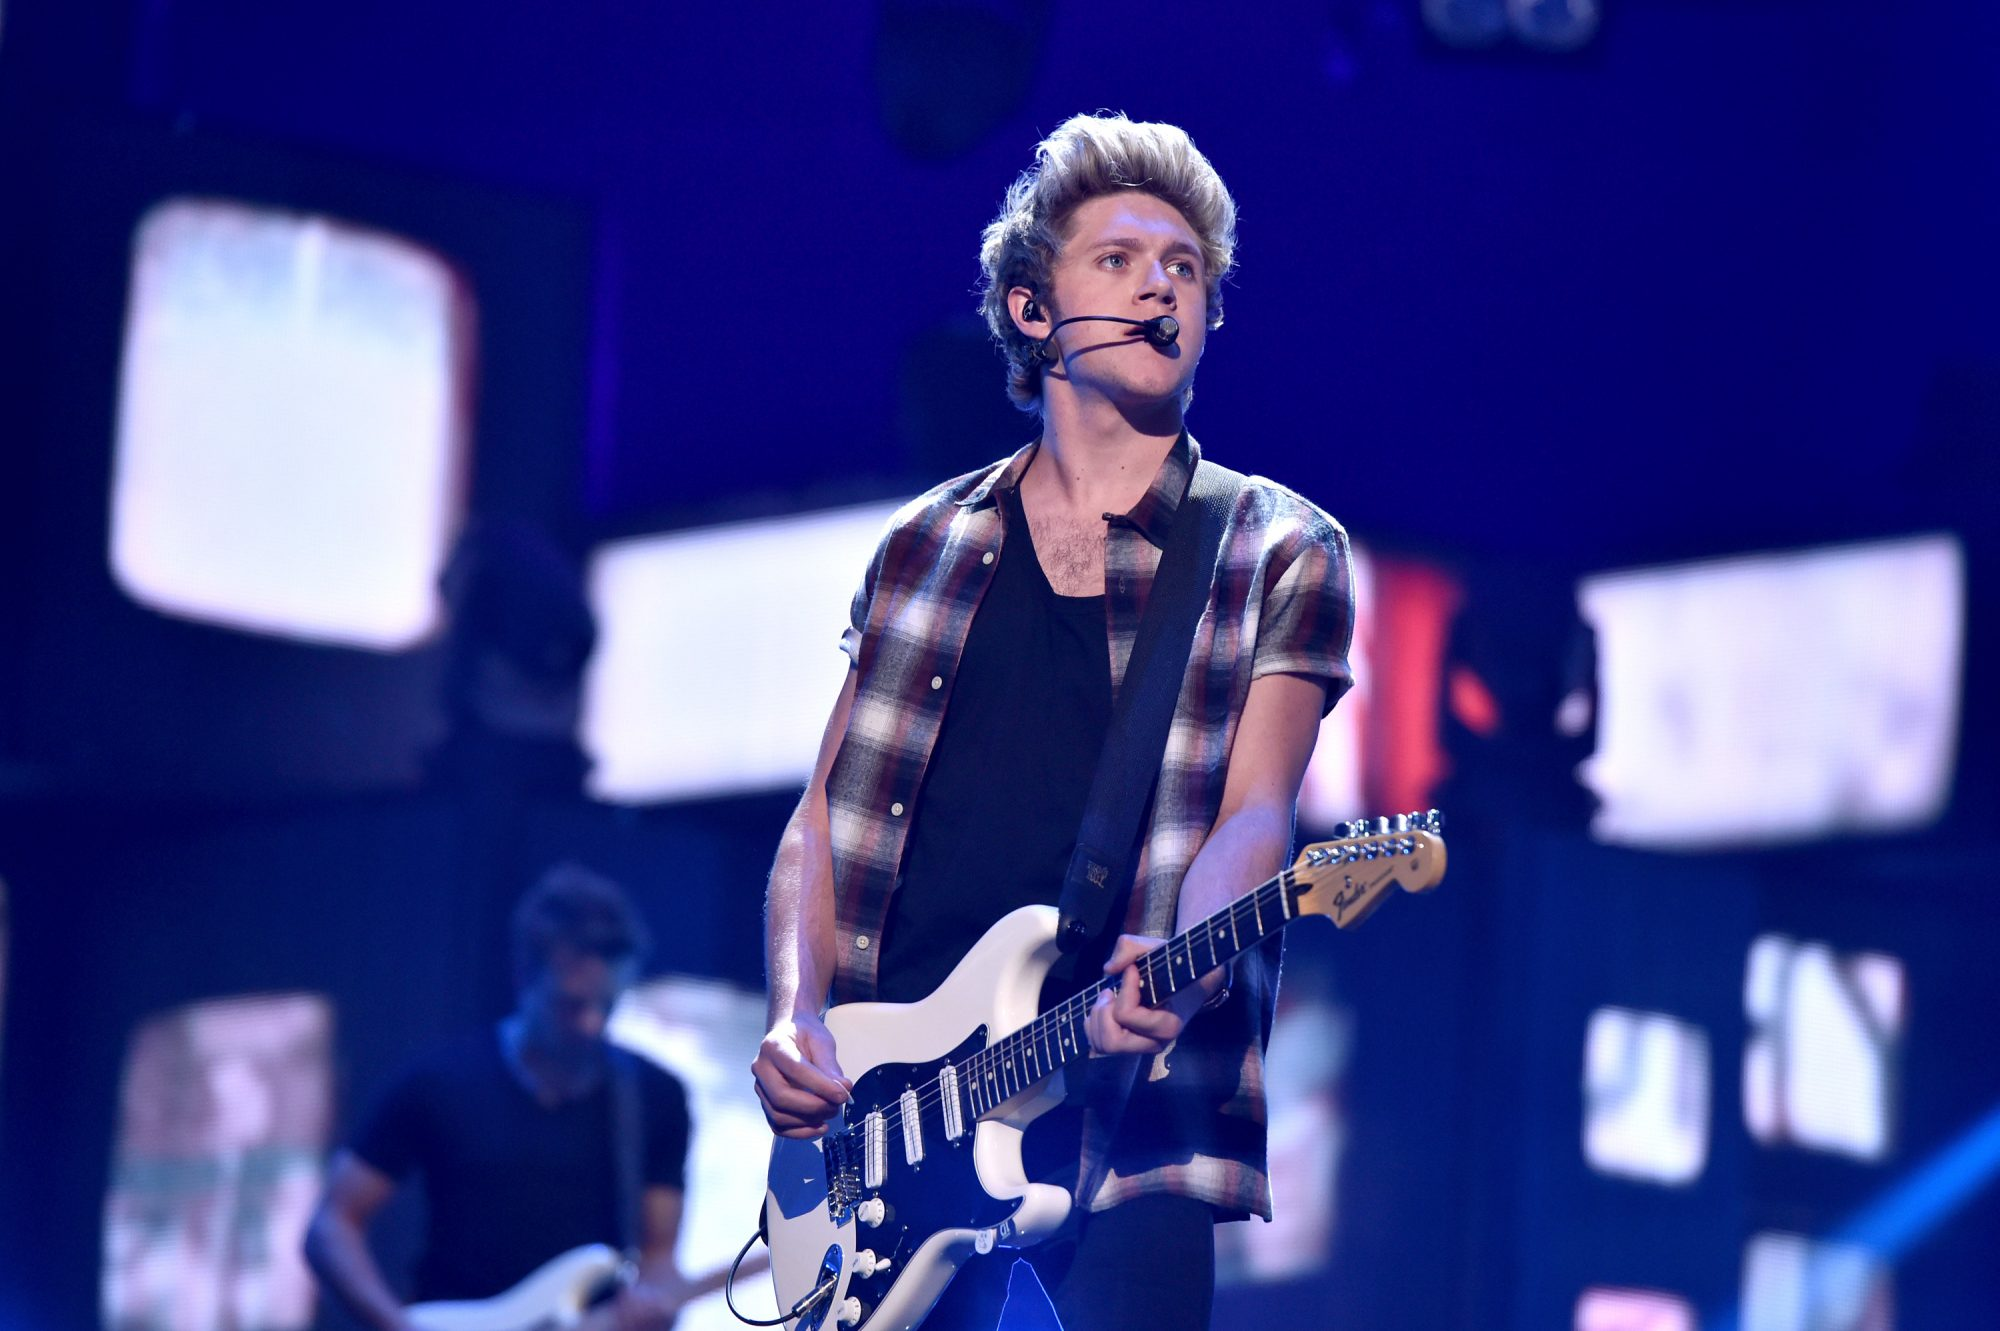 LAS VEGAS, NV - SEPTEMBER 20:  Recording artist Niall Horan of music group One Direction performs onstage during the 2014 iHeartRadio Music Festival at the MGM Grand Garden Arena on September 20, 2014 in Las Vegas, Nevada.  (Photo by Kevin Winter/Getty Images for iHeartMedia)